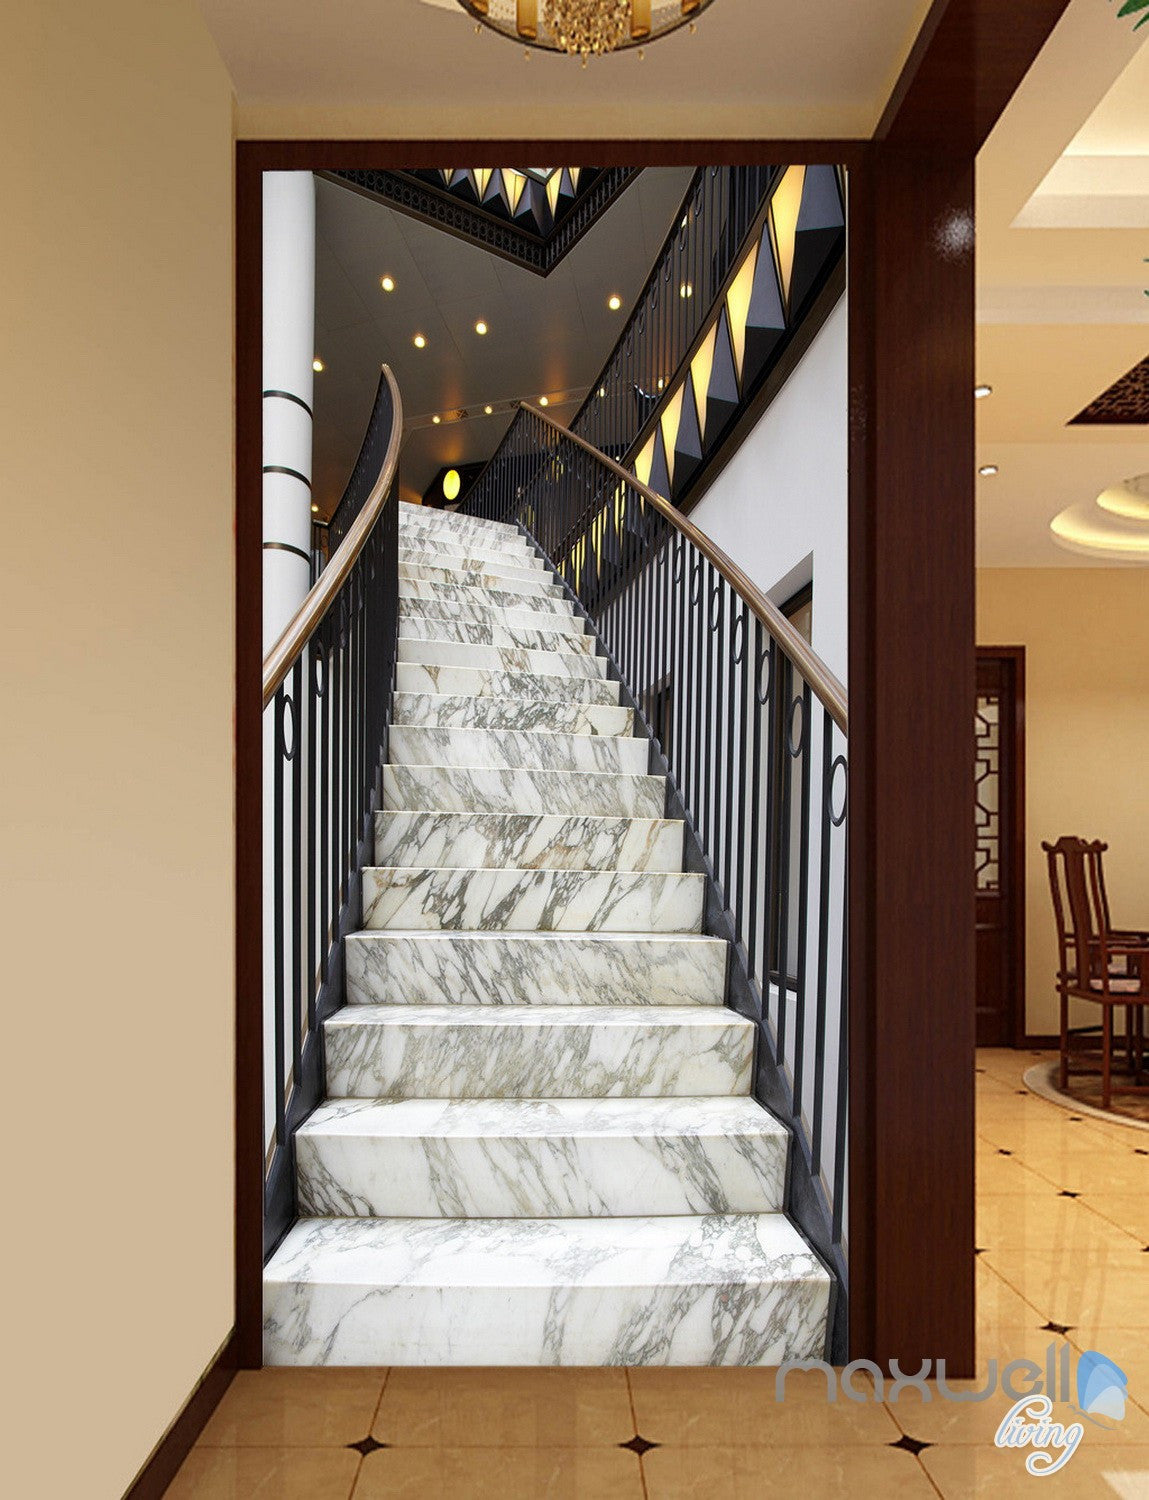 3d modern marble stairs corridor entrance wall mural decals art print idecoroom. Black Bedroom Furniture Sets. Home Design Ideas